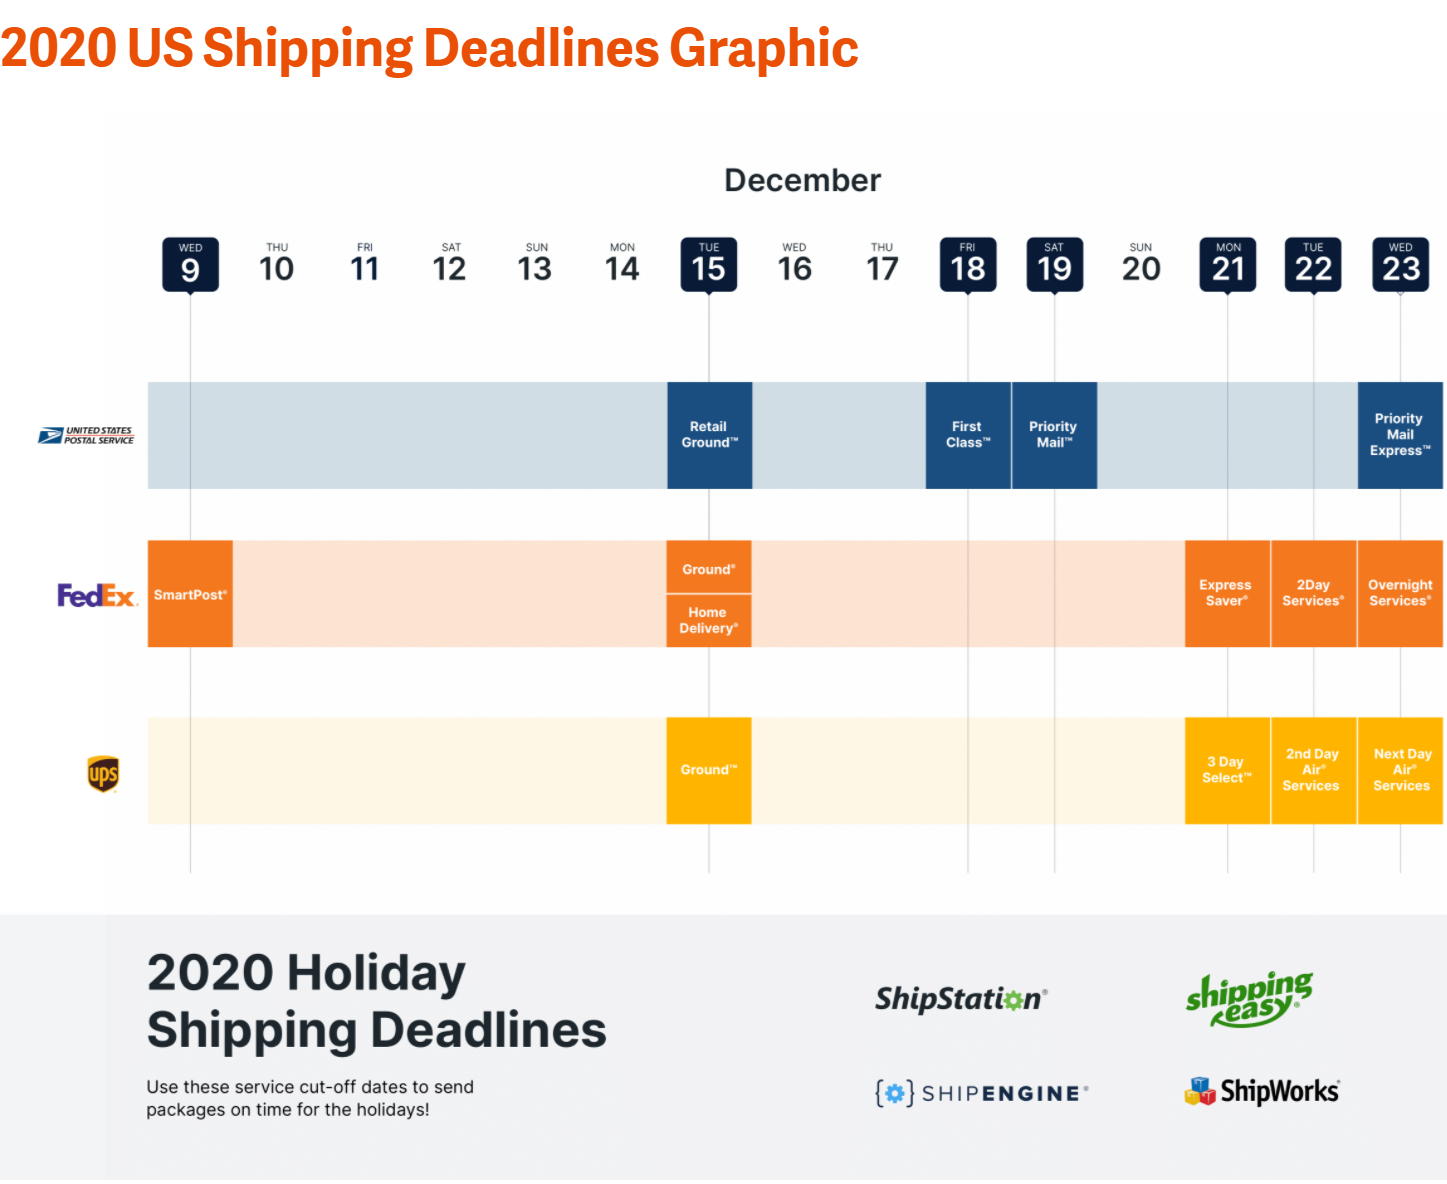 ShipStation holiday shipping deadlines 2020